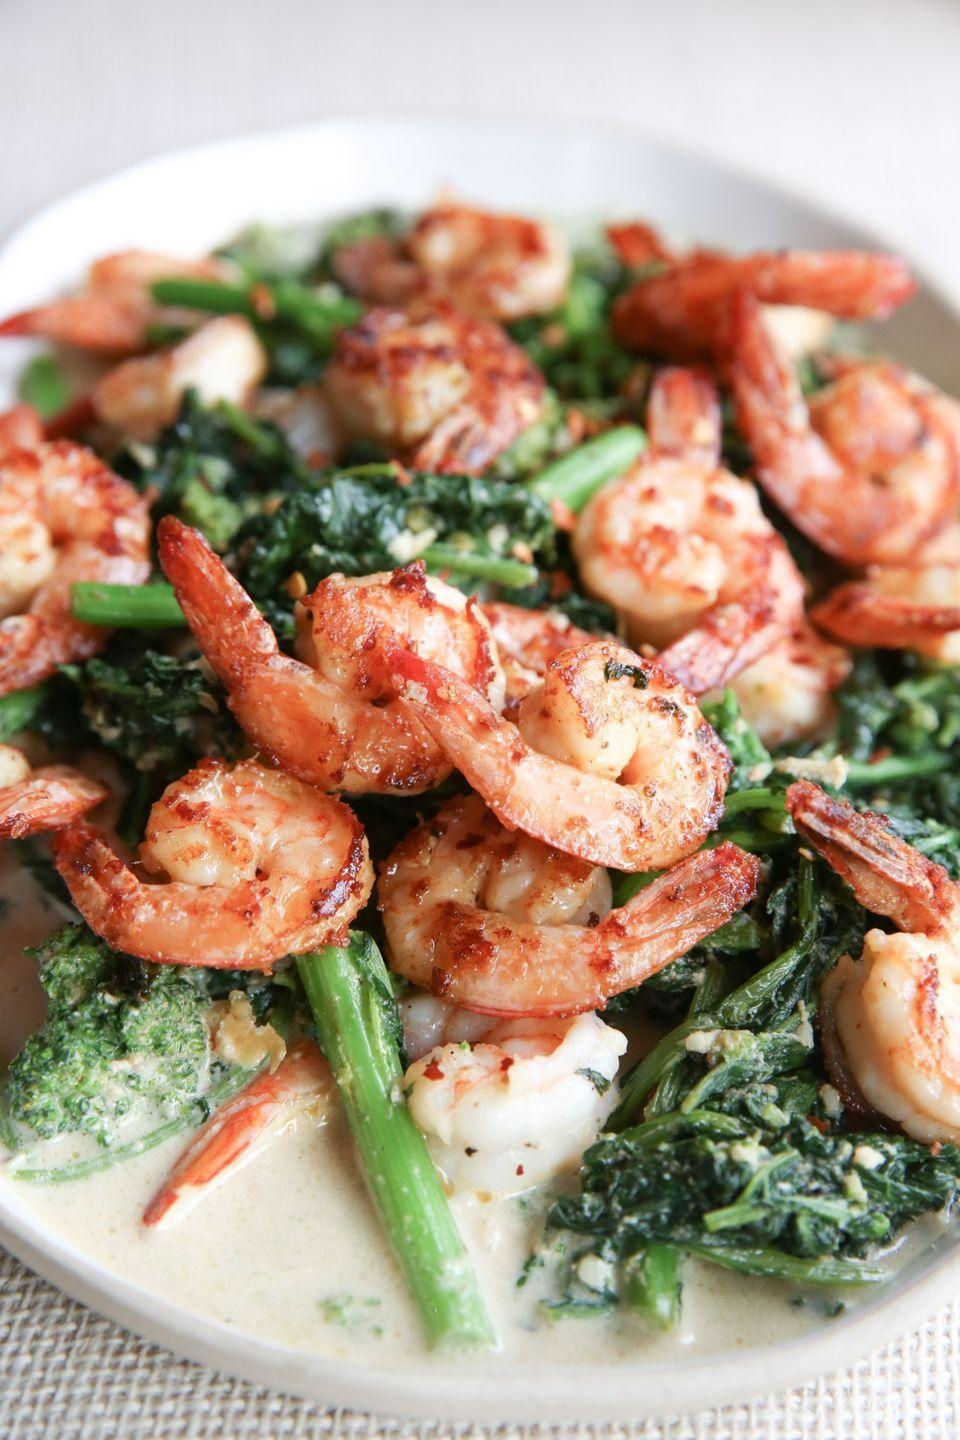 "<p>Shrimp + cheese is the best way to upgrade a boring weeknight.</p><p>Get the recipe from <a href=""https://www.delish.com/cooking/recipe-ideas/recipes/a50860/parmesan-shrimp-with-garlicky-broccoli-recipe/"" rel=""nofollow noopener"" target=""_blank"" data-ylk=""slk:Delish"" class=""link rapid-noclick-resp"">Delish</a>.<br></p>"